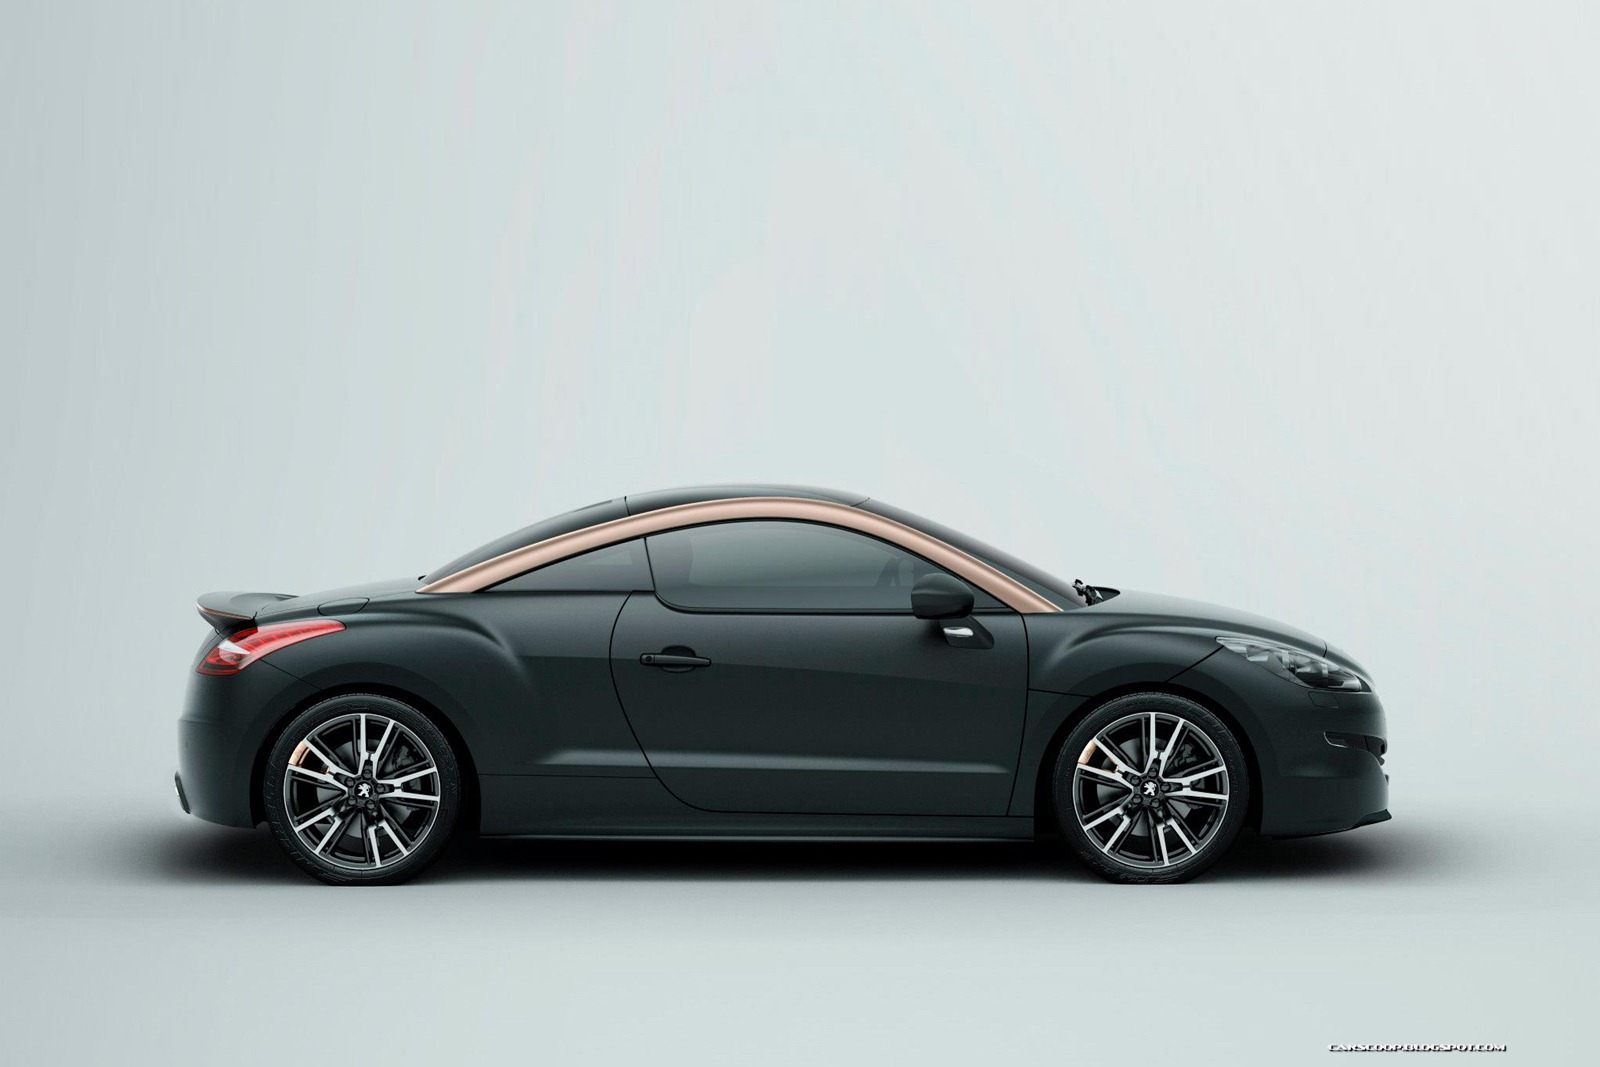 Peugeot rcz r concept revealed coming to 2012 paris motor show